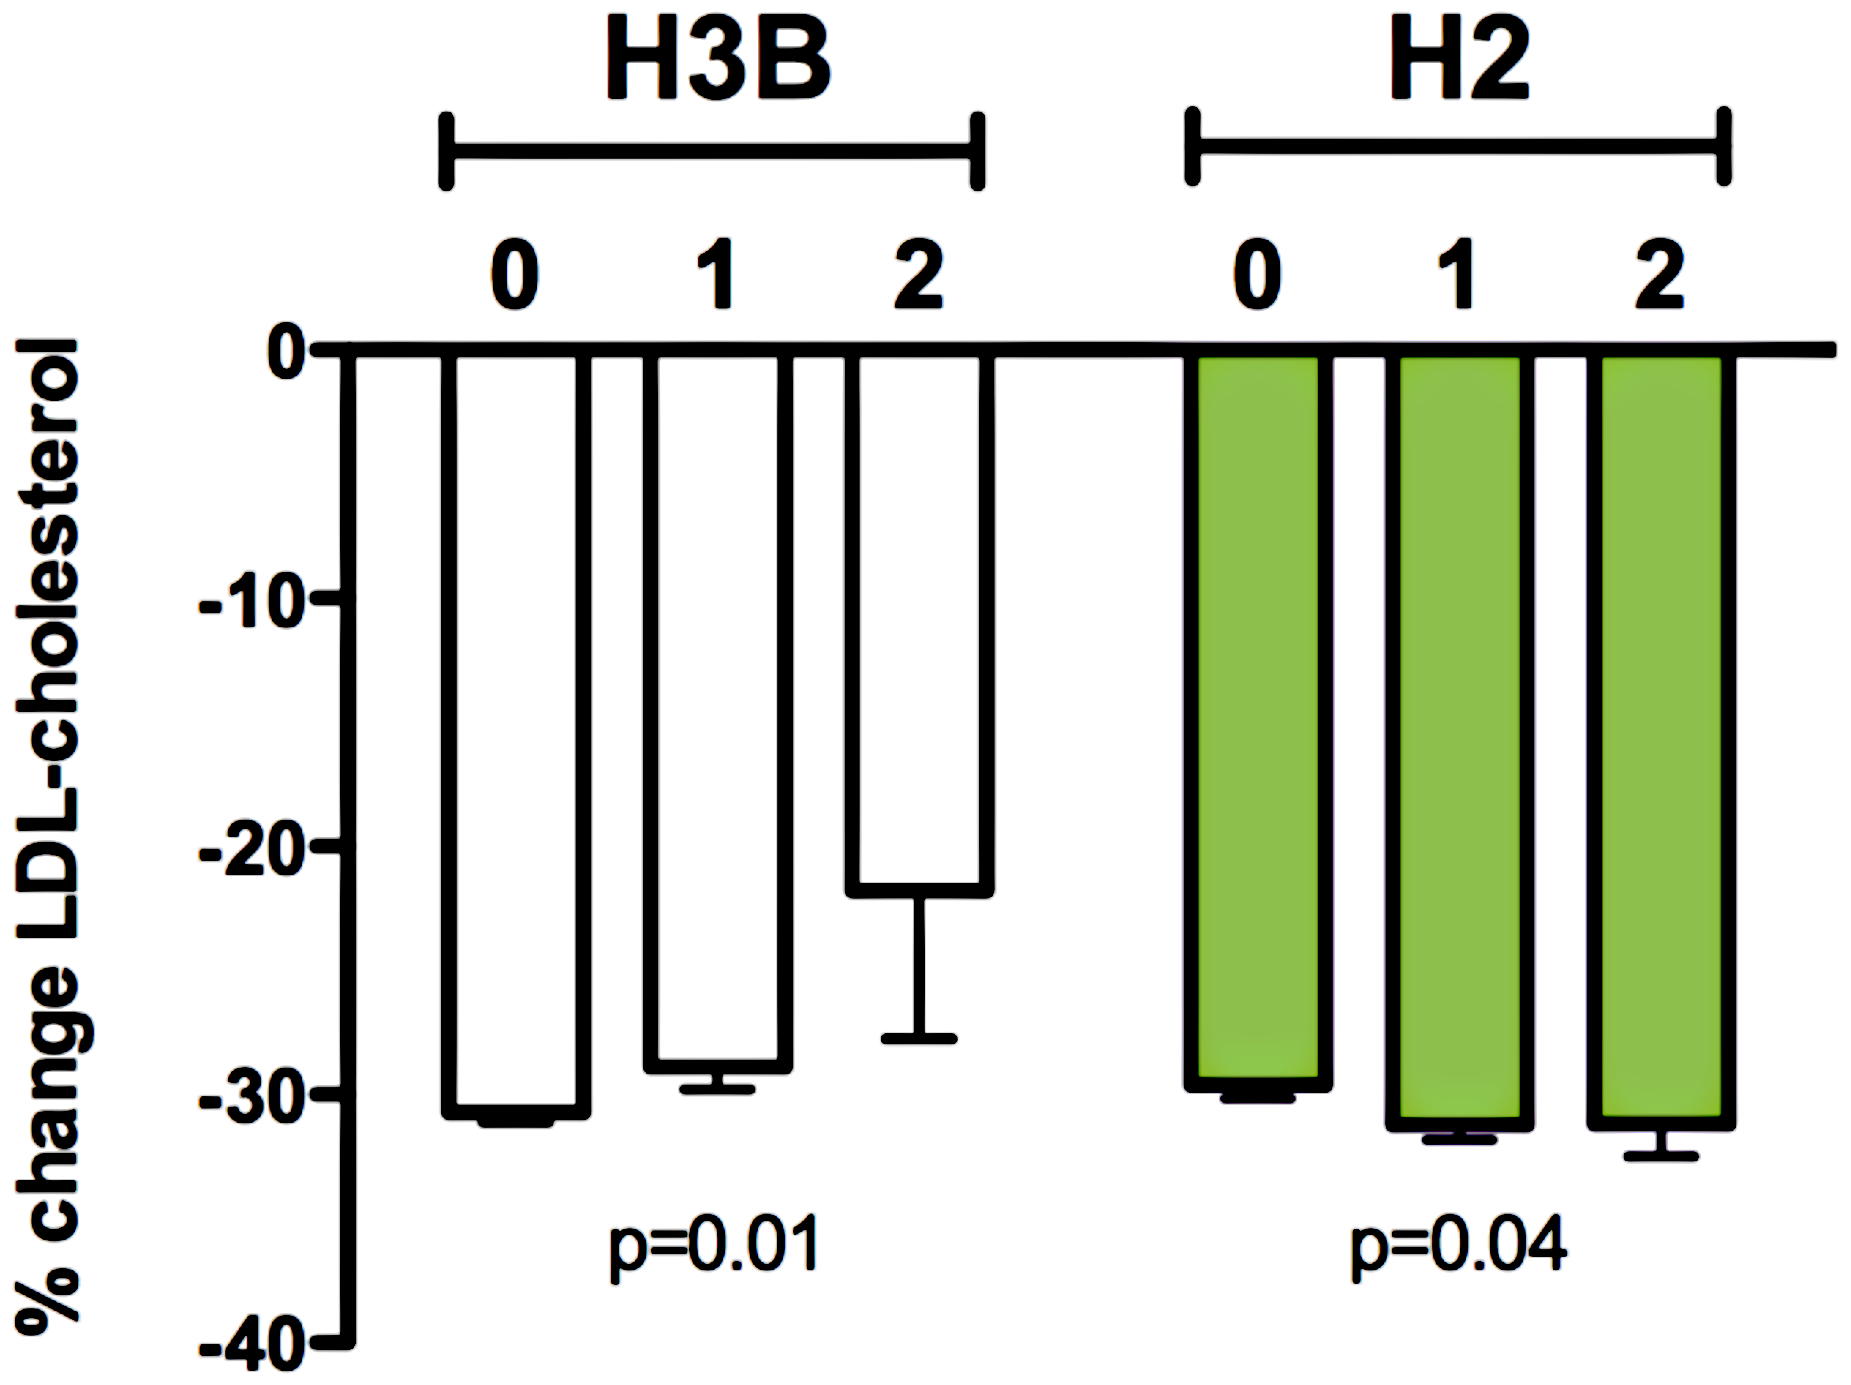 Relationship between <i>RHOA</i> haplotypes H3B and H2 and statin-induced changes in LDL-cholesterol response in the CAP (N=580) and PRINCE (N=1306) clinical trials.